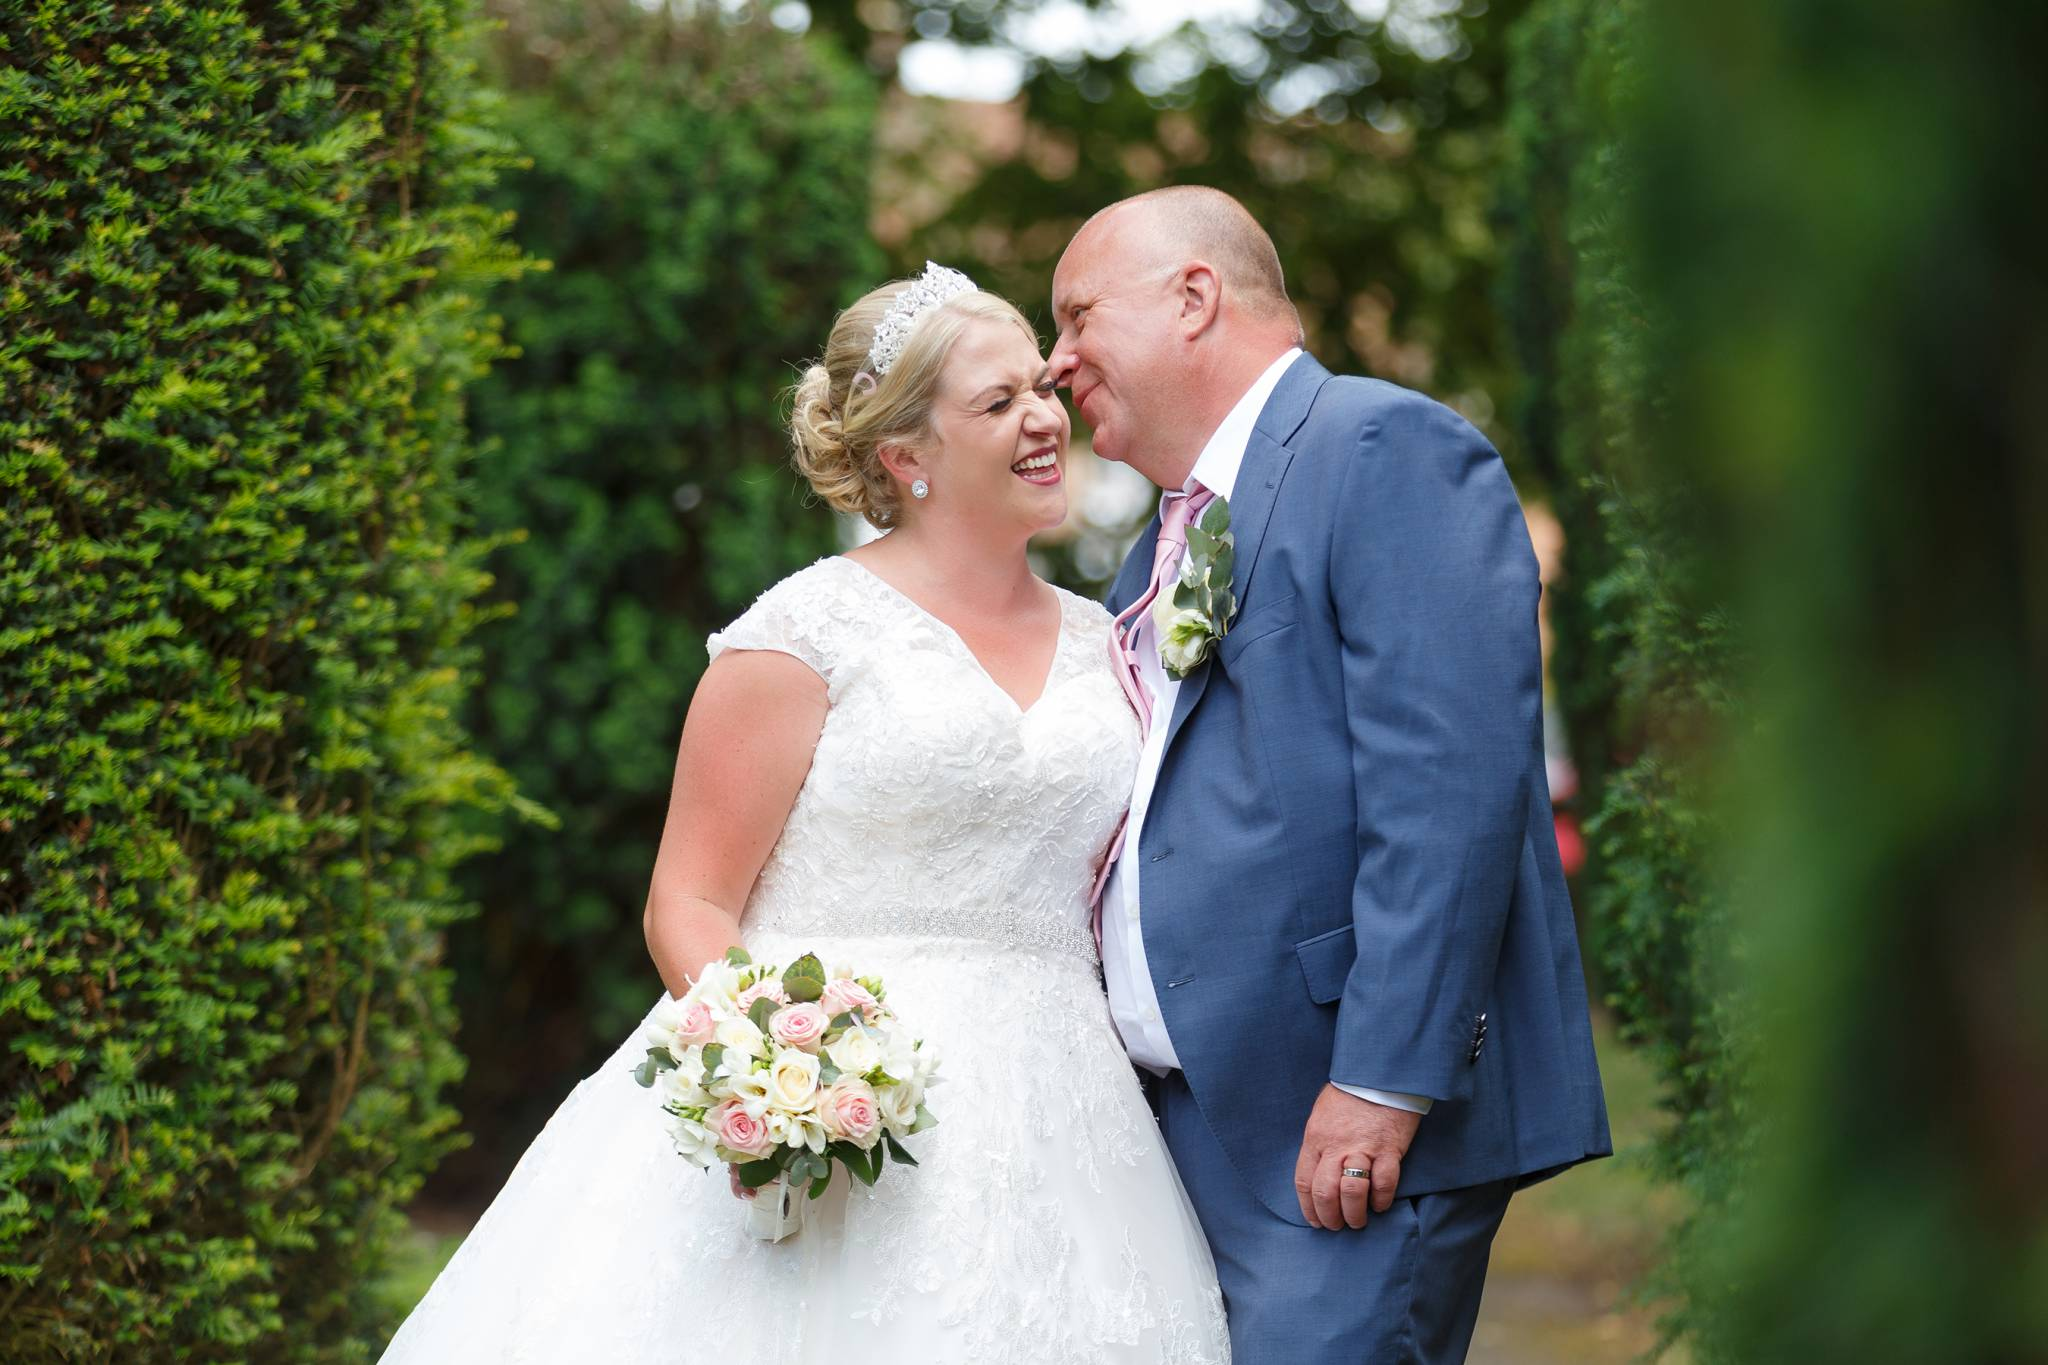 wedding photographer, wedding photographer, Beaconsfield Registry office, high wycombe, buckinghamshire, bucks